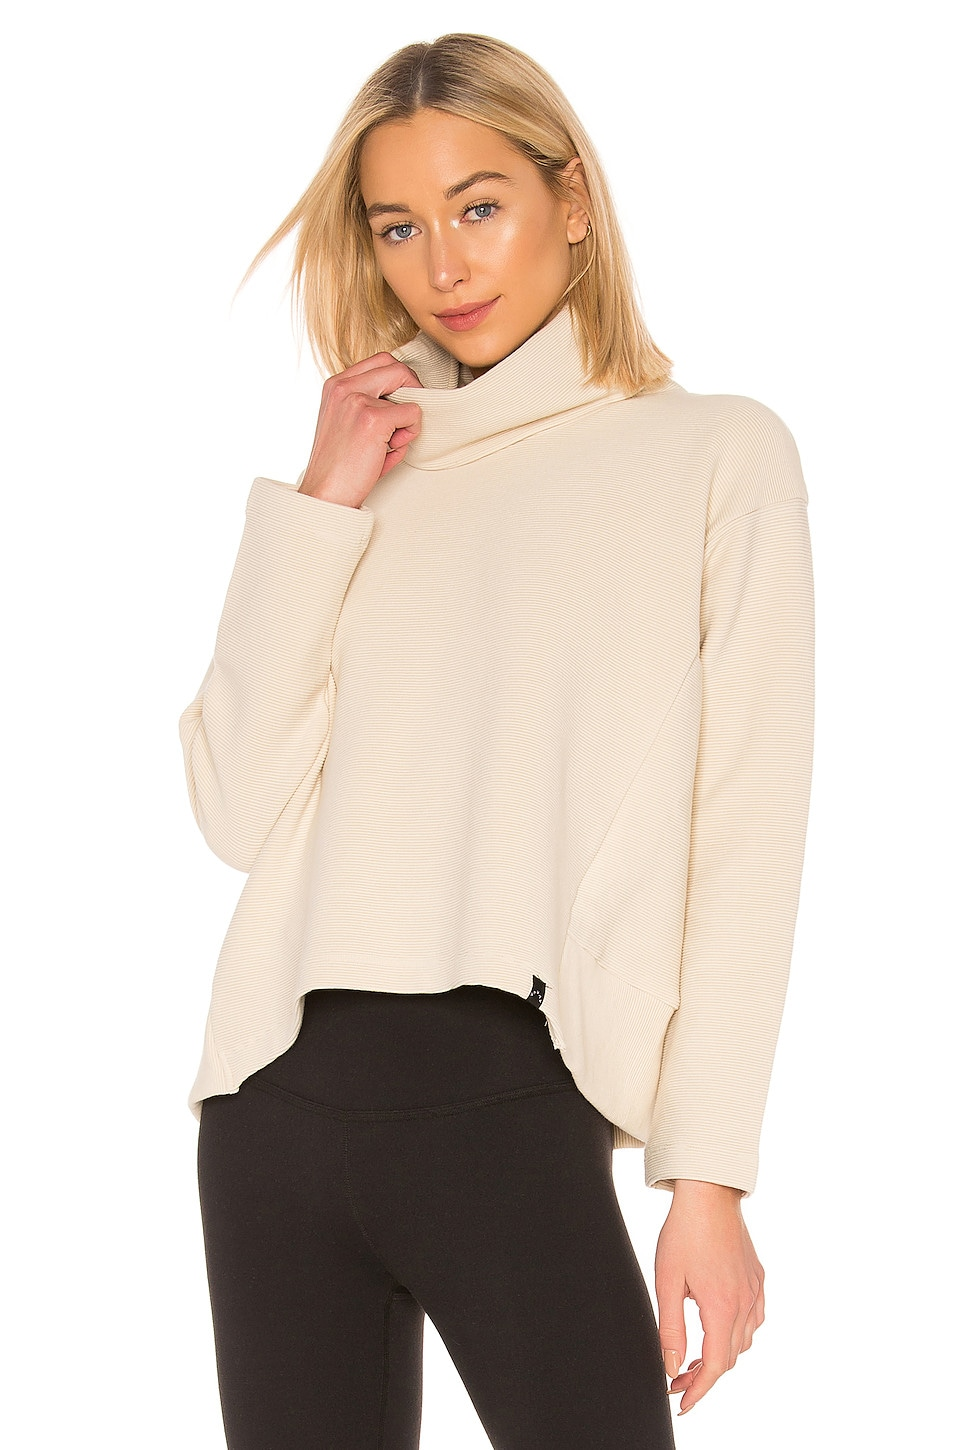 Varley T-shirts VARLEY COLINA SWEATSHIRT IN CREAM.